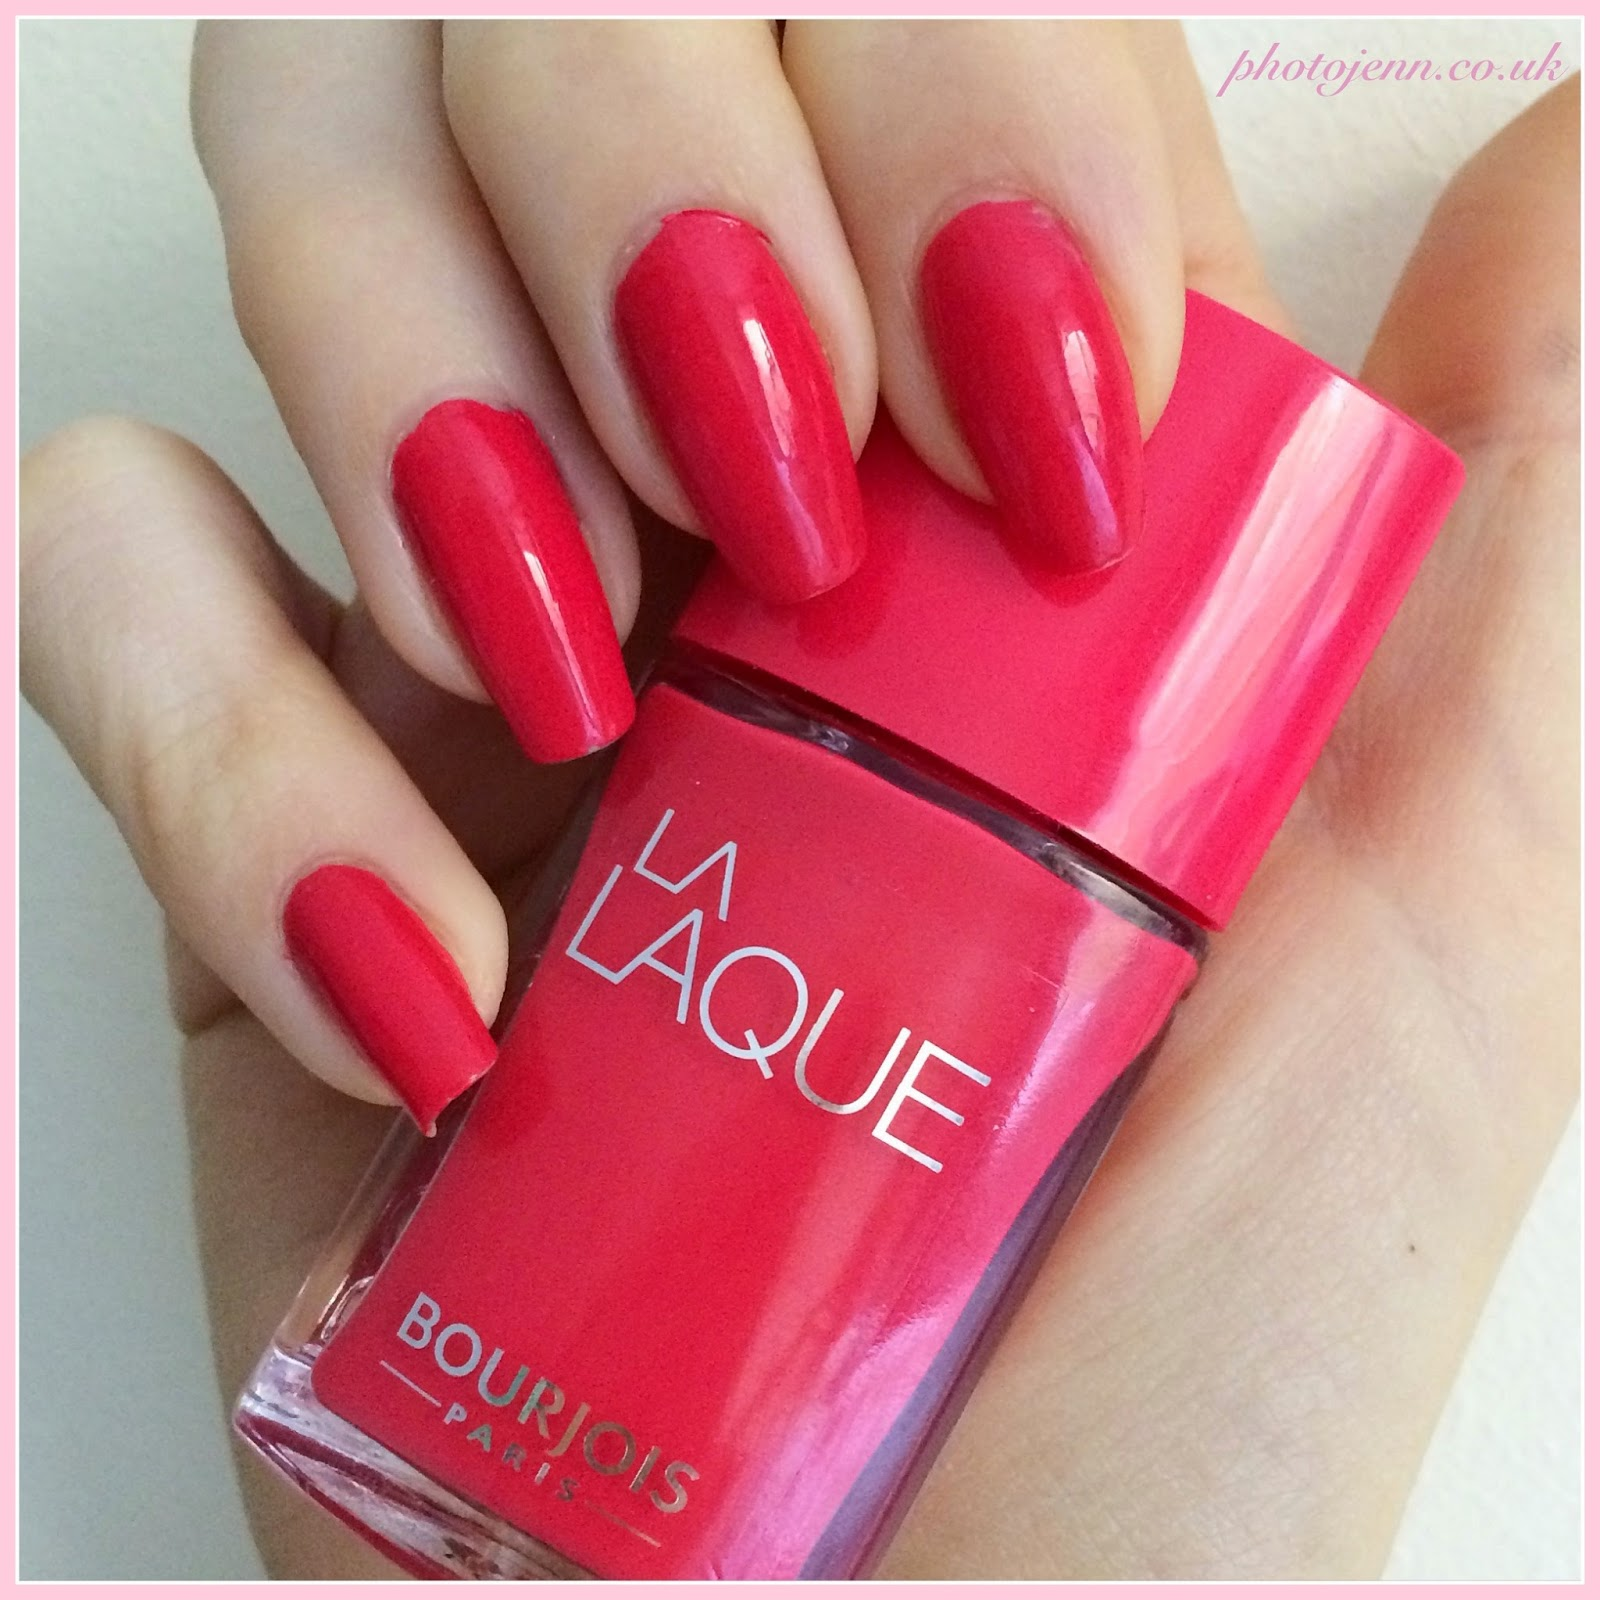 bourjois-la-laque-nail-polish-Flambant-Rose-swatch